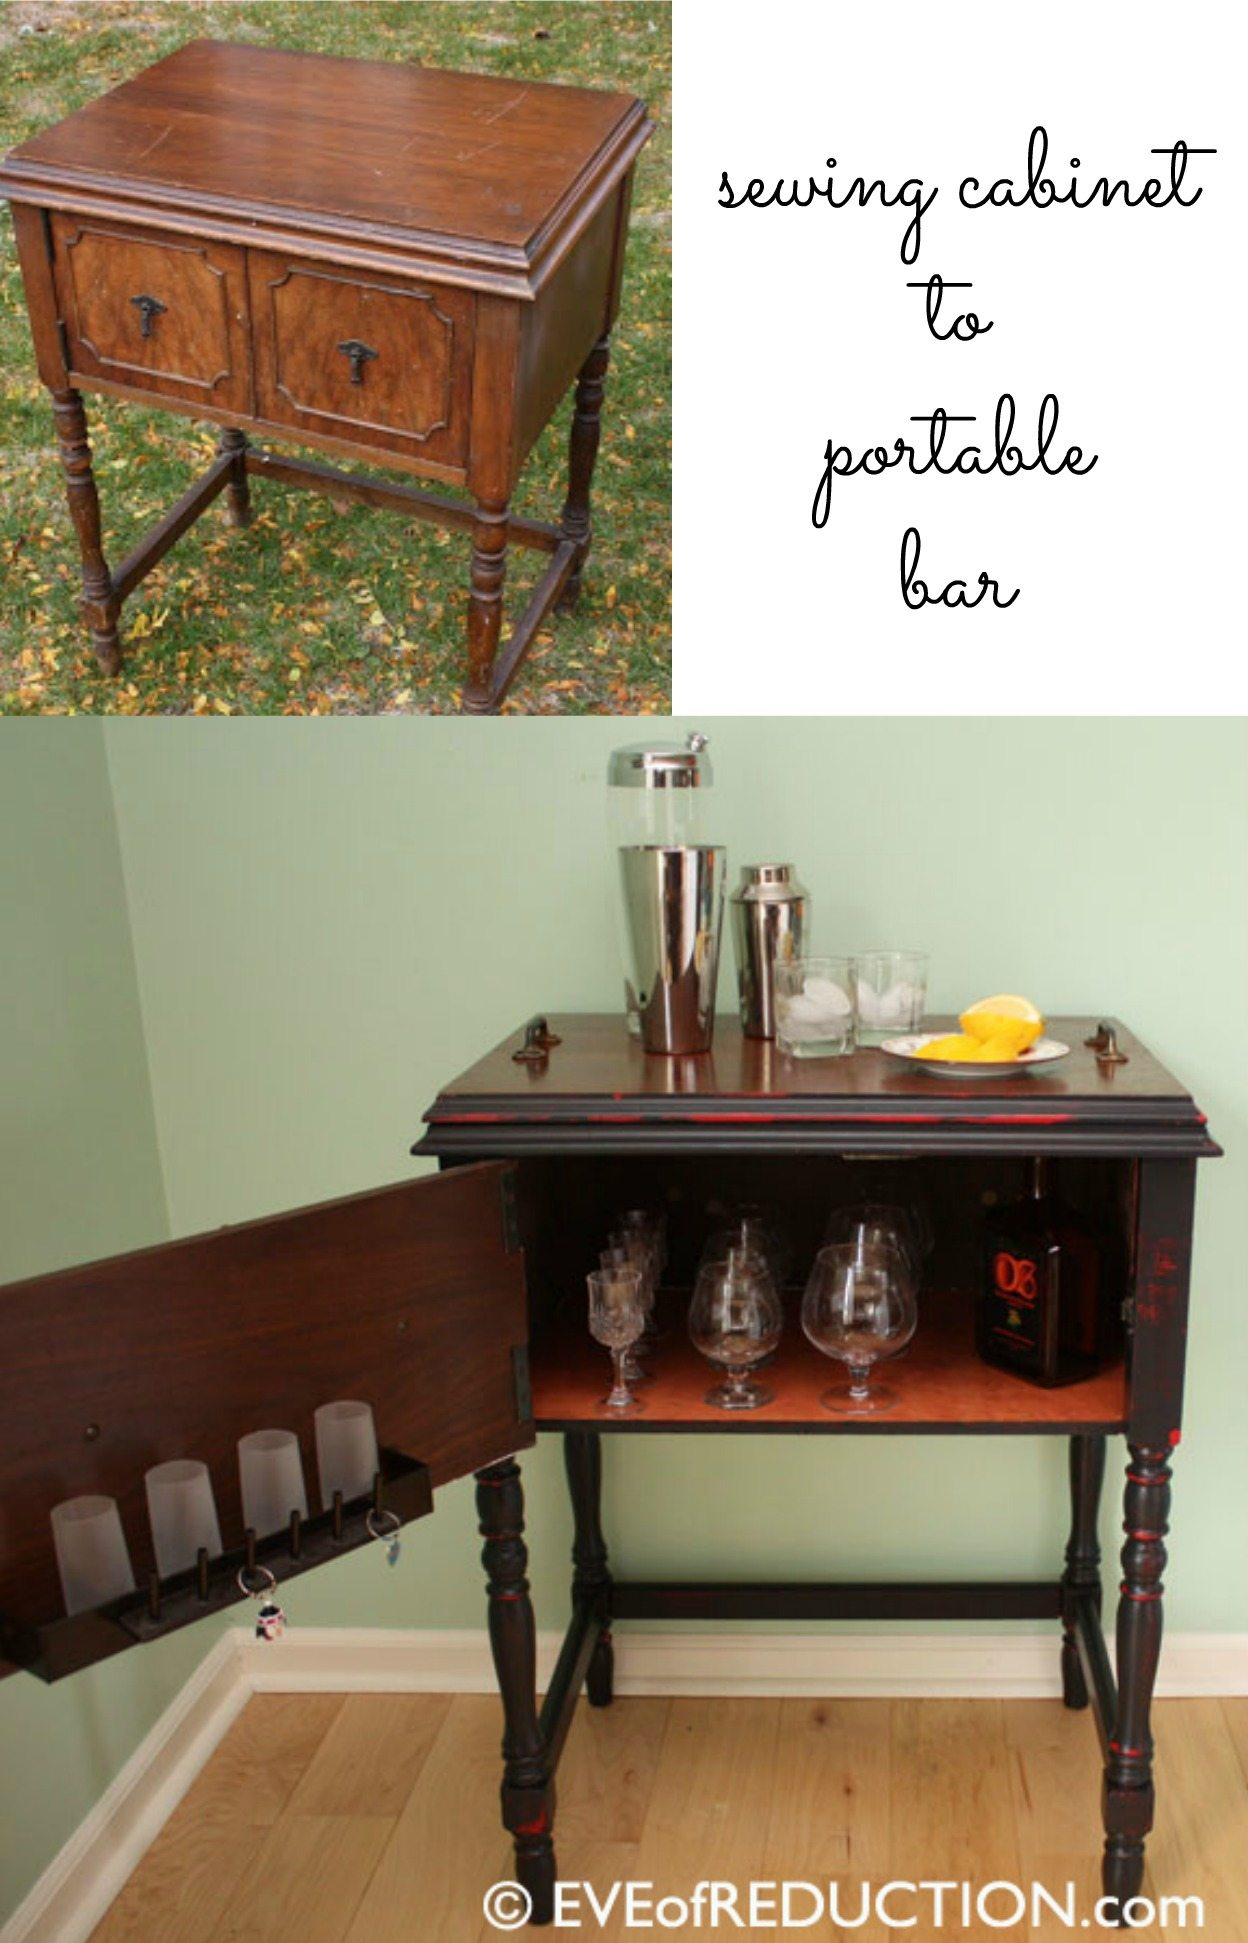 How to make a sewing cabinet bar. Old sewing machine cabinets make great new useful pieces including bar carts. Easy weekend project to DIY. #MyRepurposedLife #repurposed #furniture #sewingcabinet #bar #weekendproject via @repurposedlife